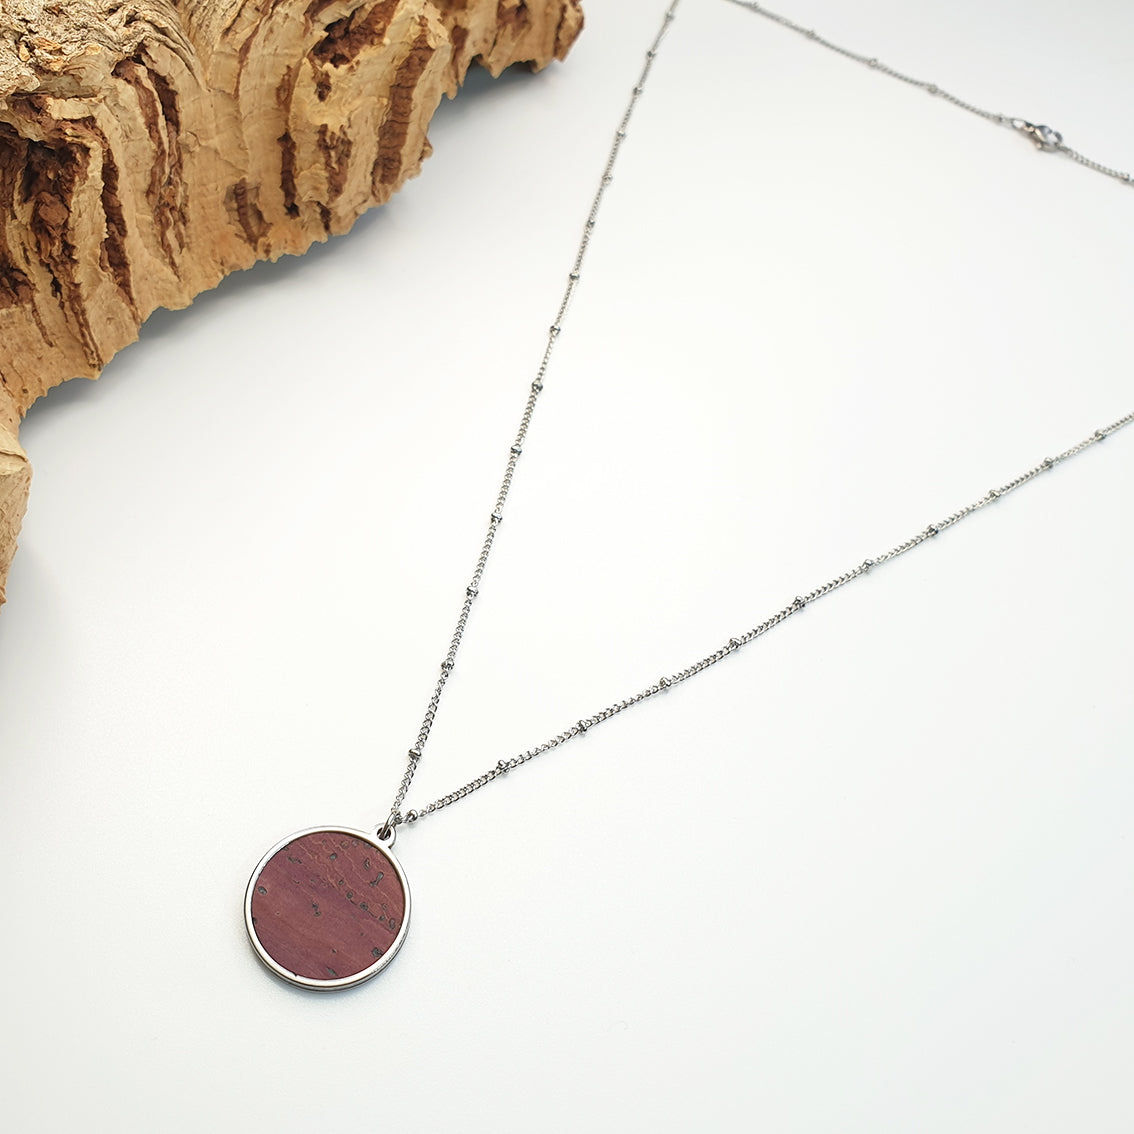 Fabrikk 1 Planet Necklace | Purple Music | Vegan 'Leather'